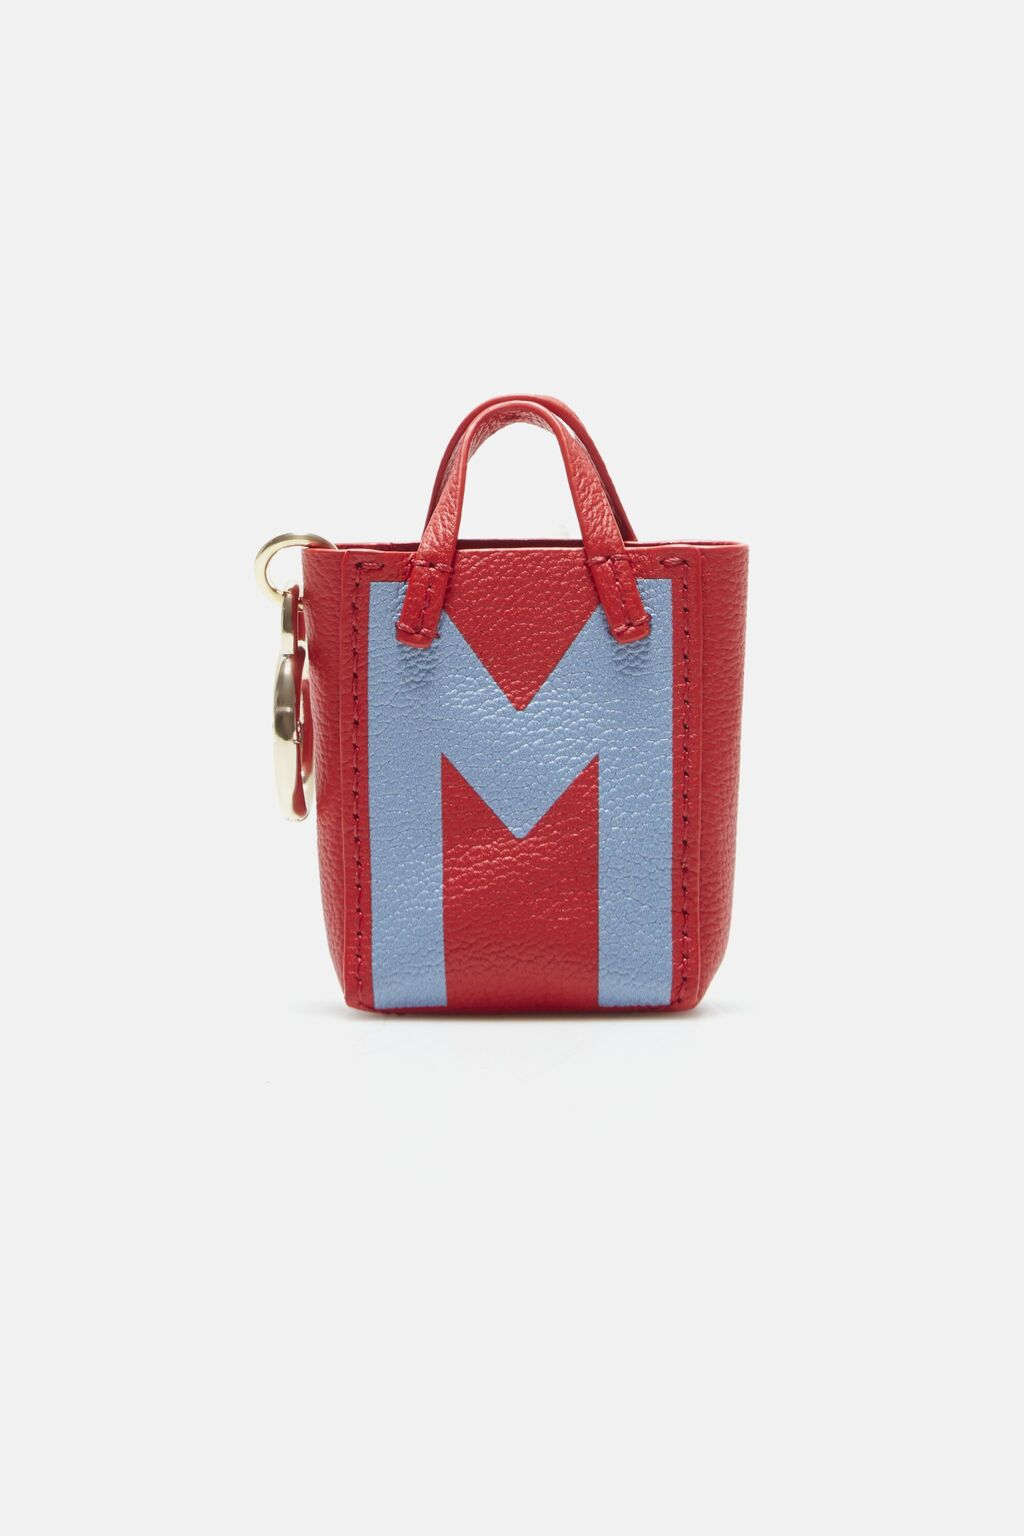 Letter M tote bag charm